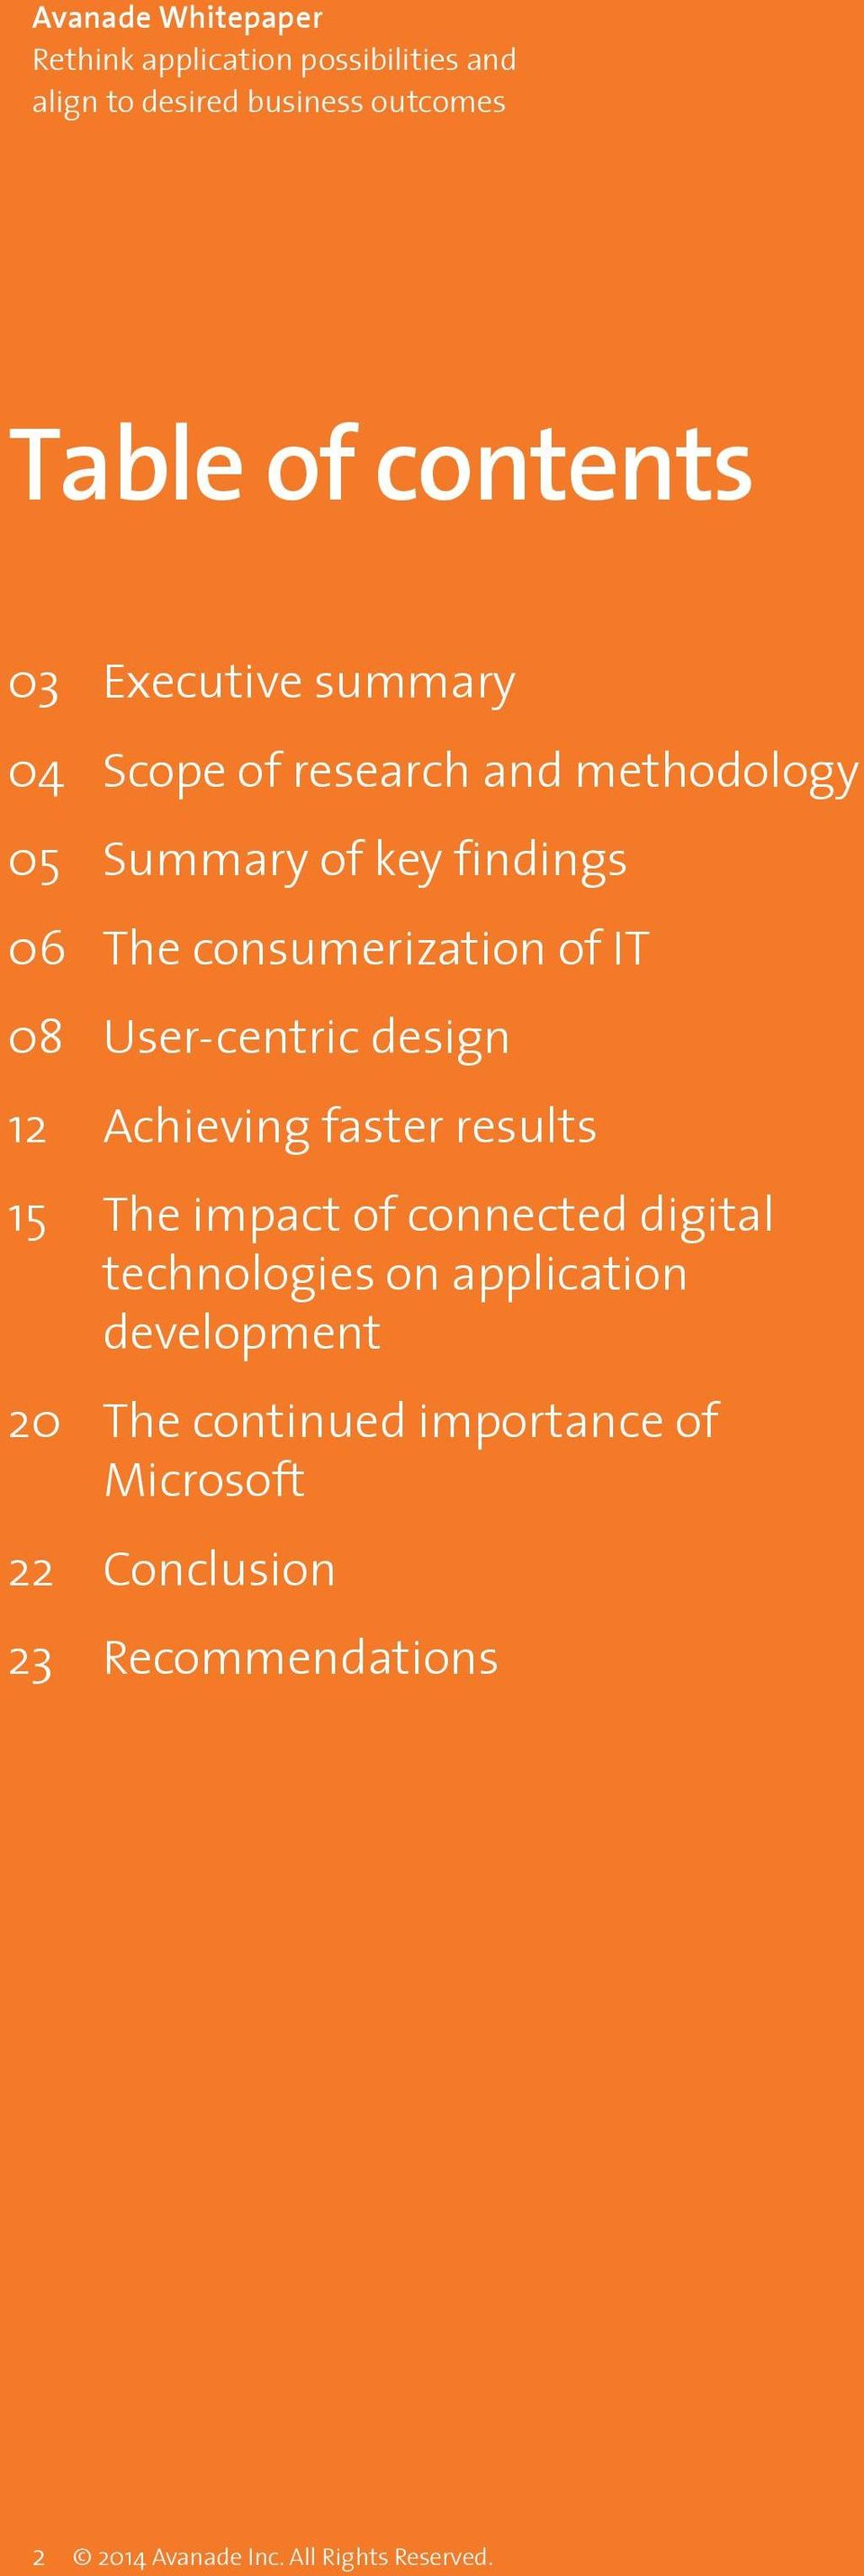 15 The impact of connected digital technologies on application development 20 The continued